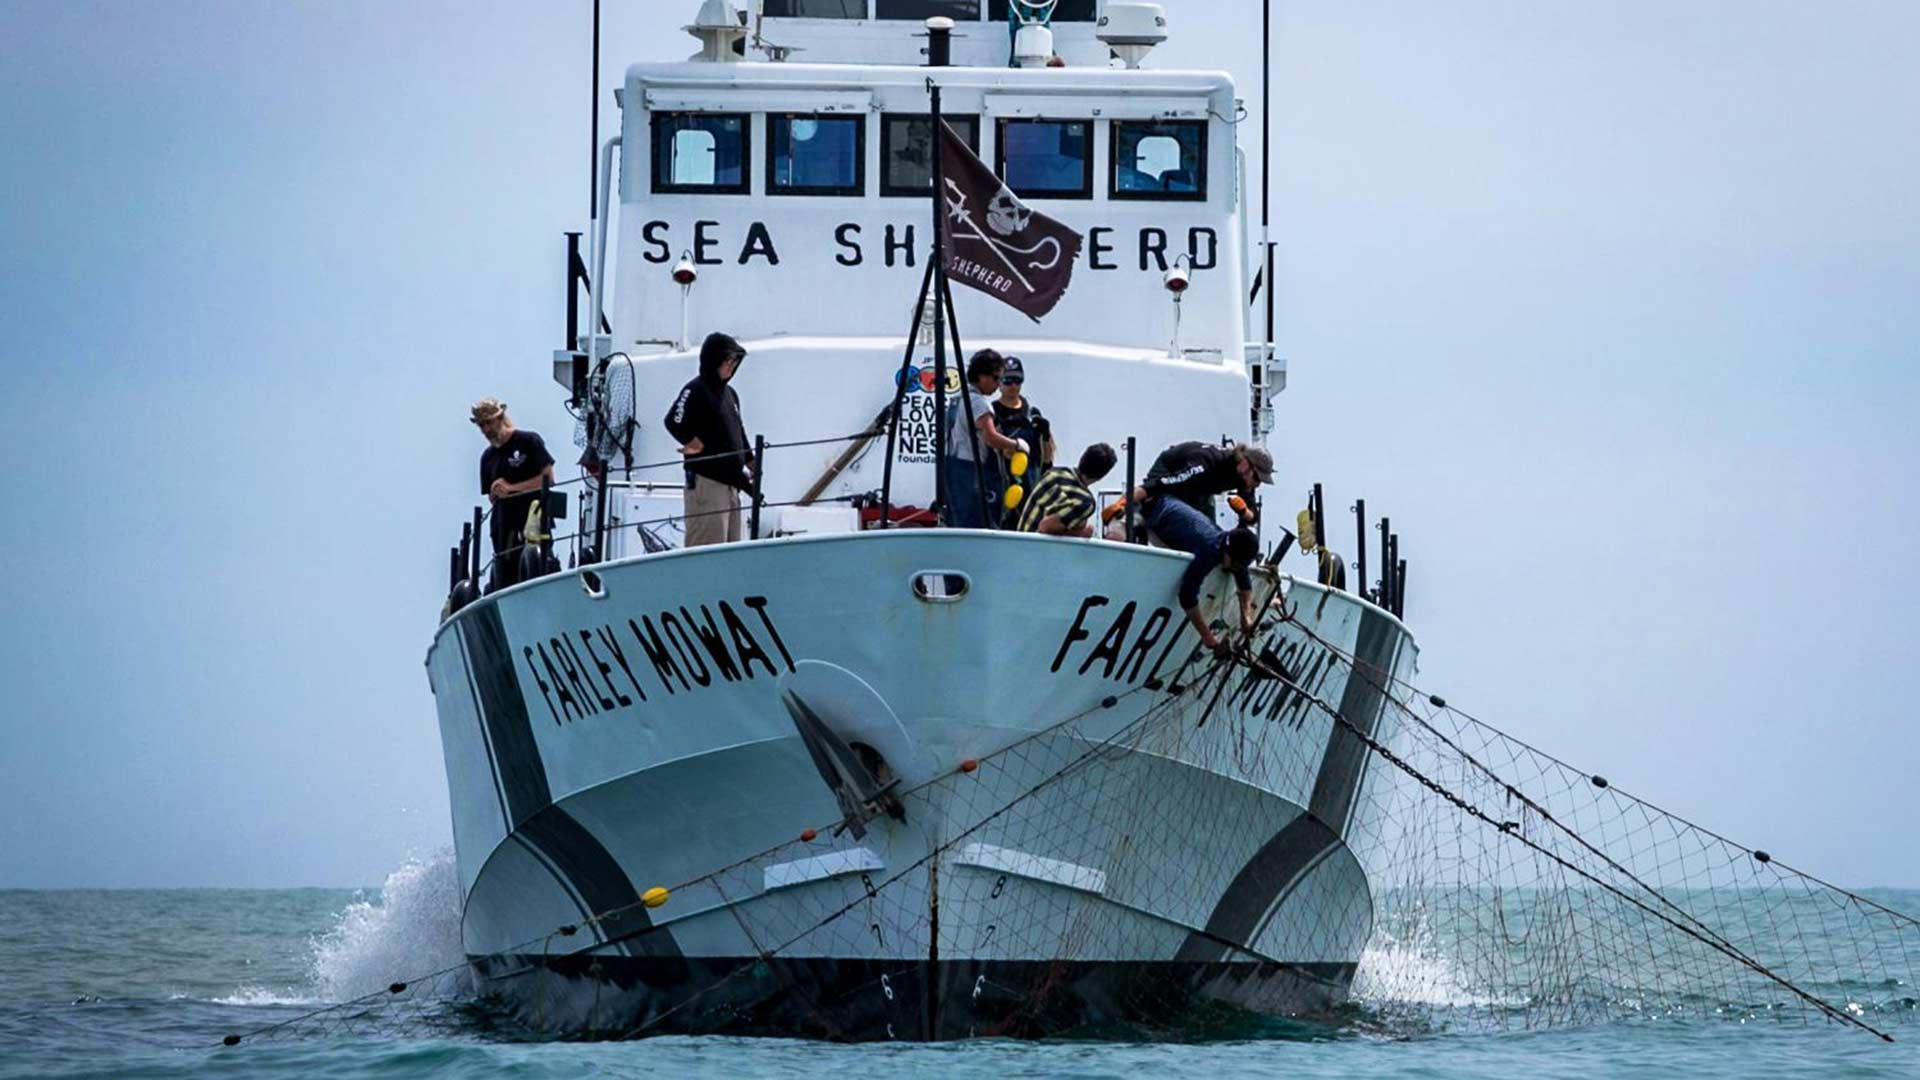 The Sea Shepherd pulls an illegal fishing net from the water in the vaquita refuge area. On March 12, 2019, the crew found a net with what they believe was a dead vaquita marina porpoise entangled in it.